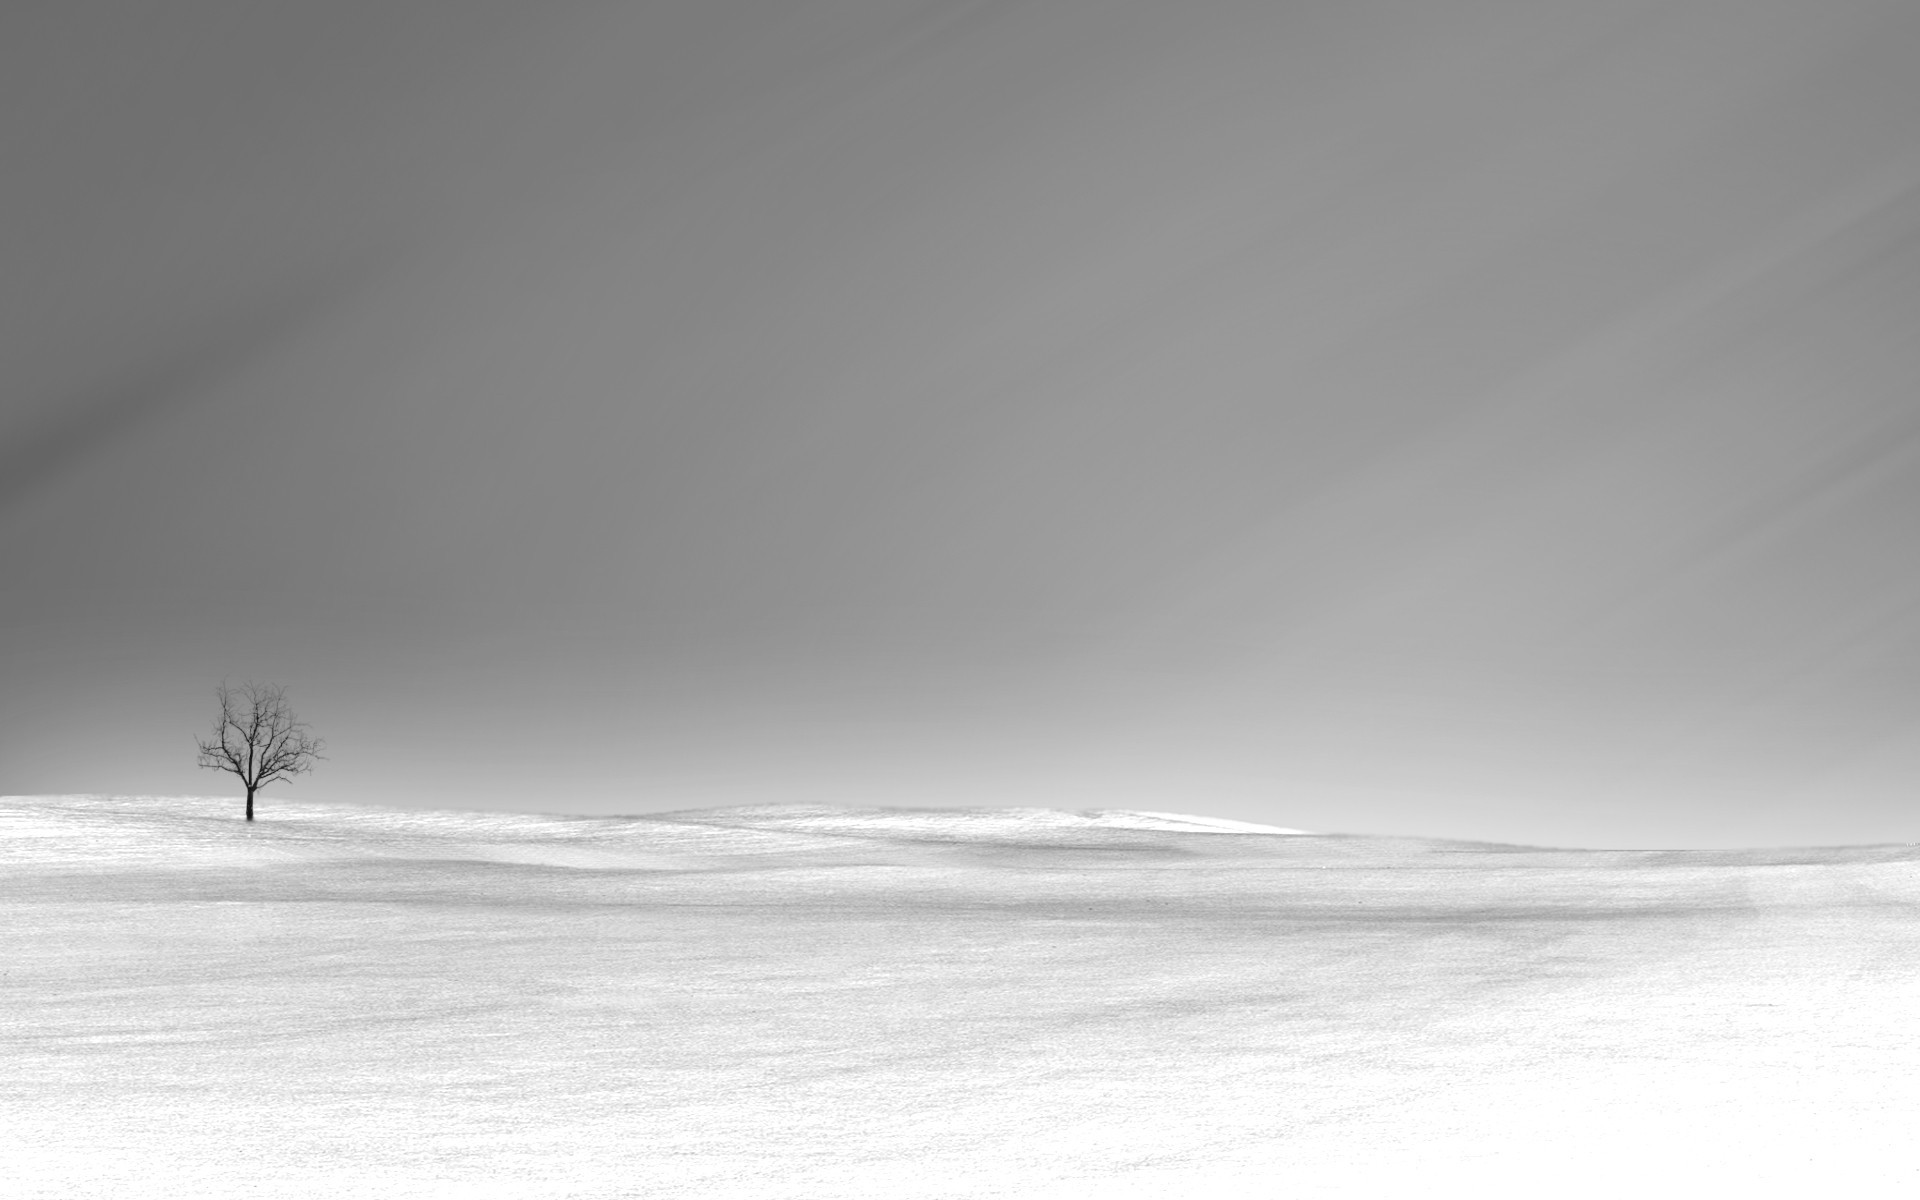 lonely minimalistic HD Wallpaper